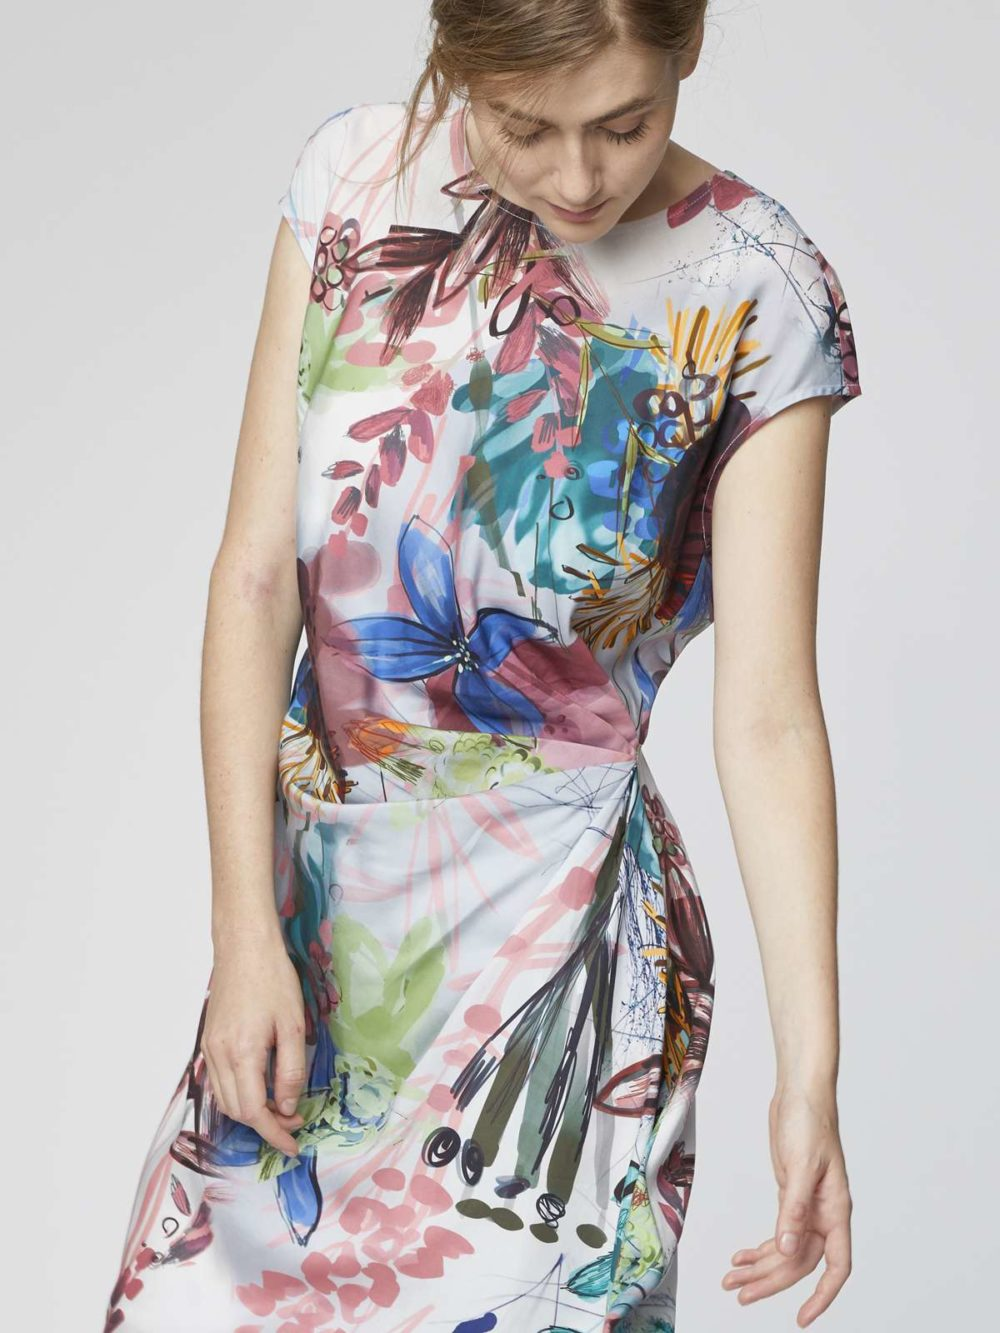 Solar Flower Dress Thought Clothing Katie Kerr Women's Clothing